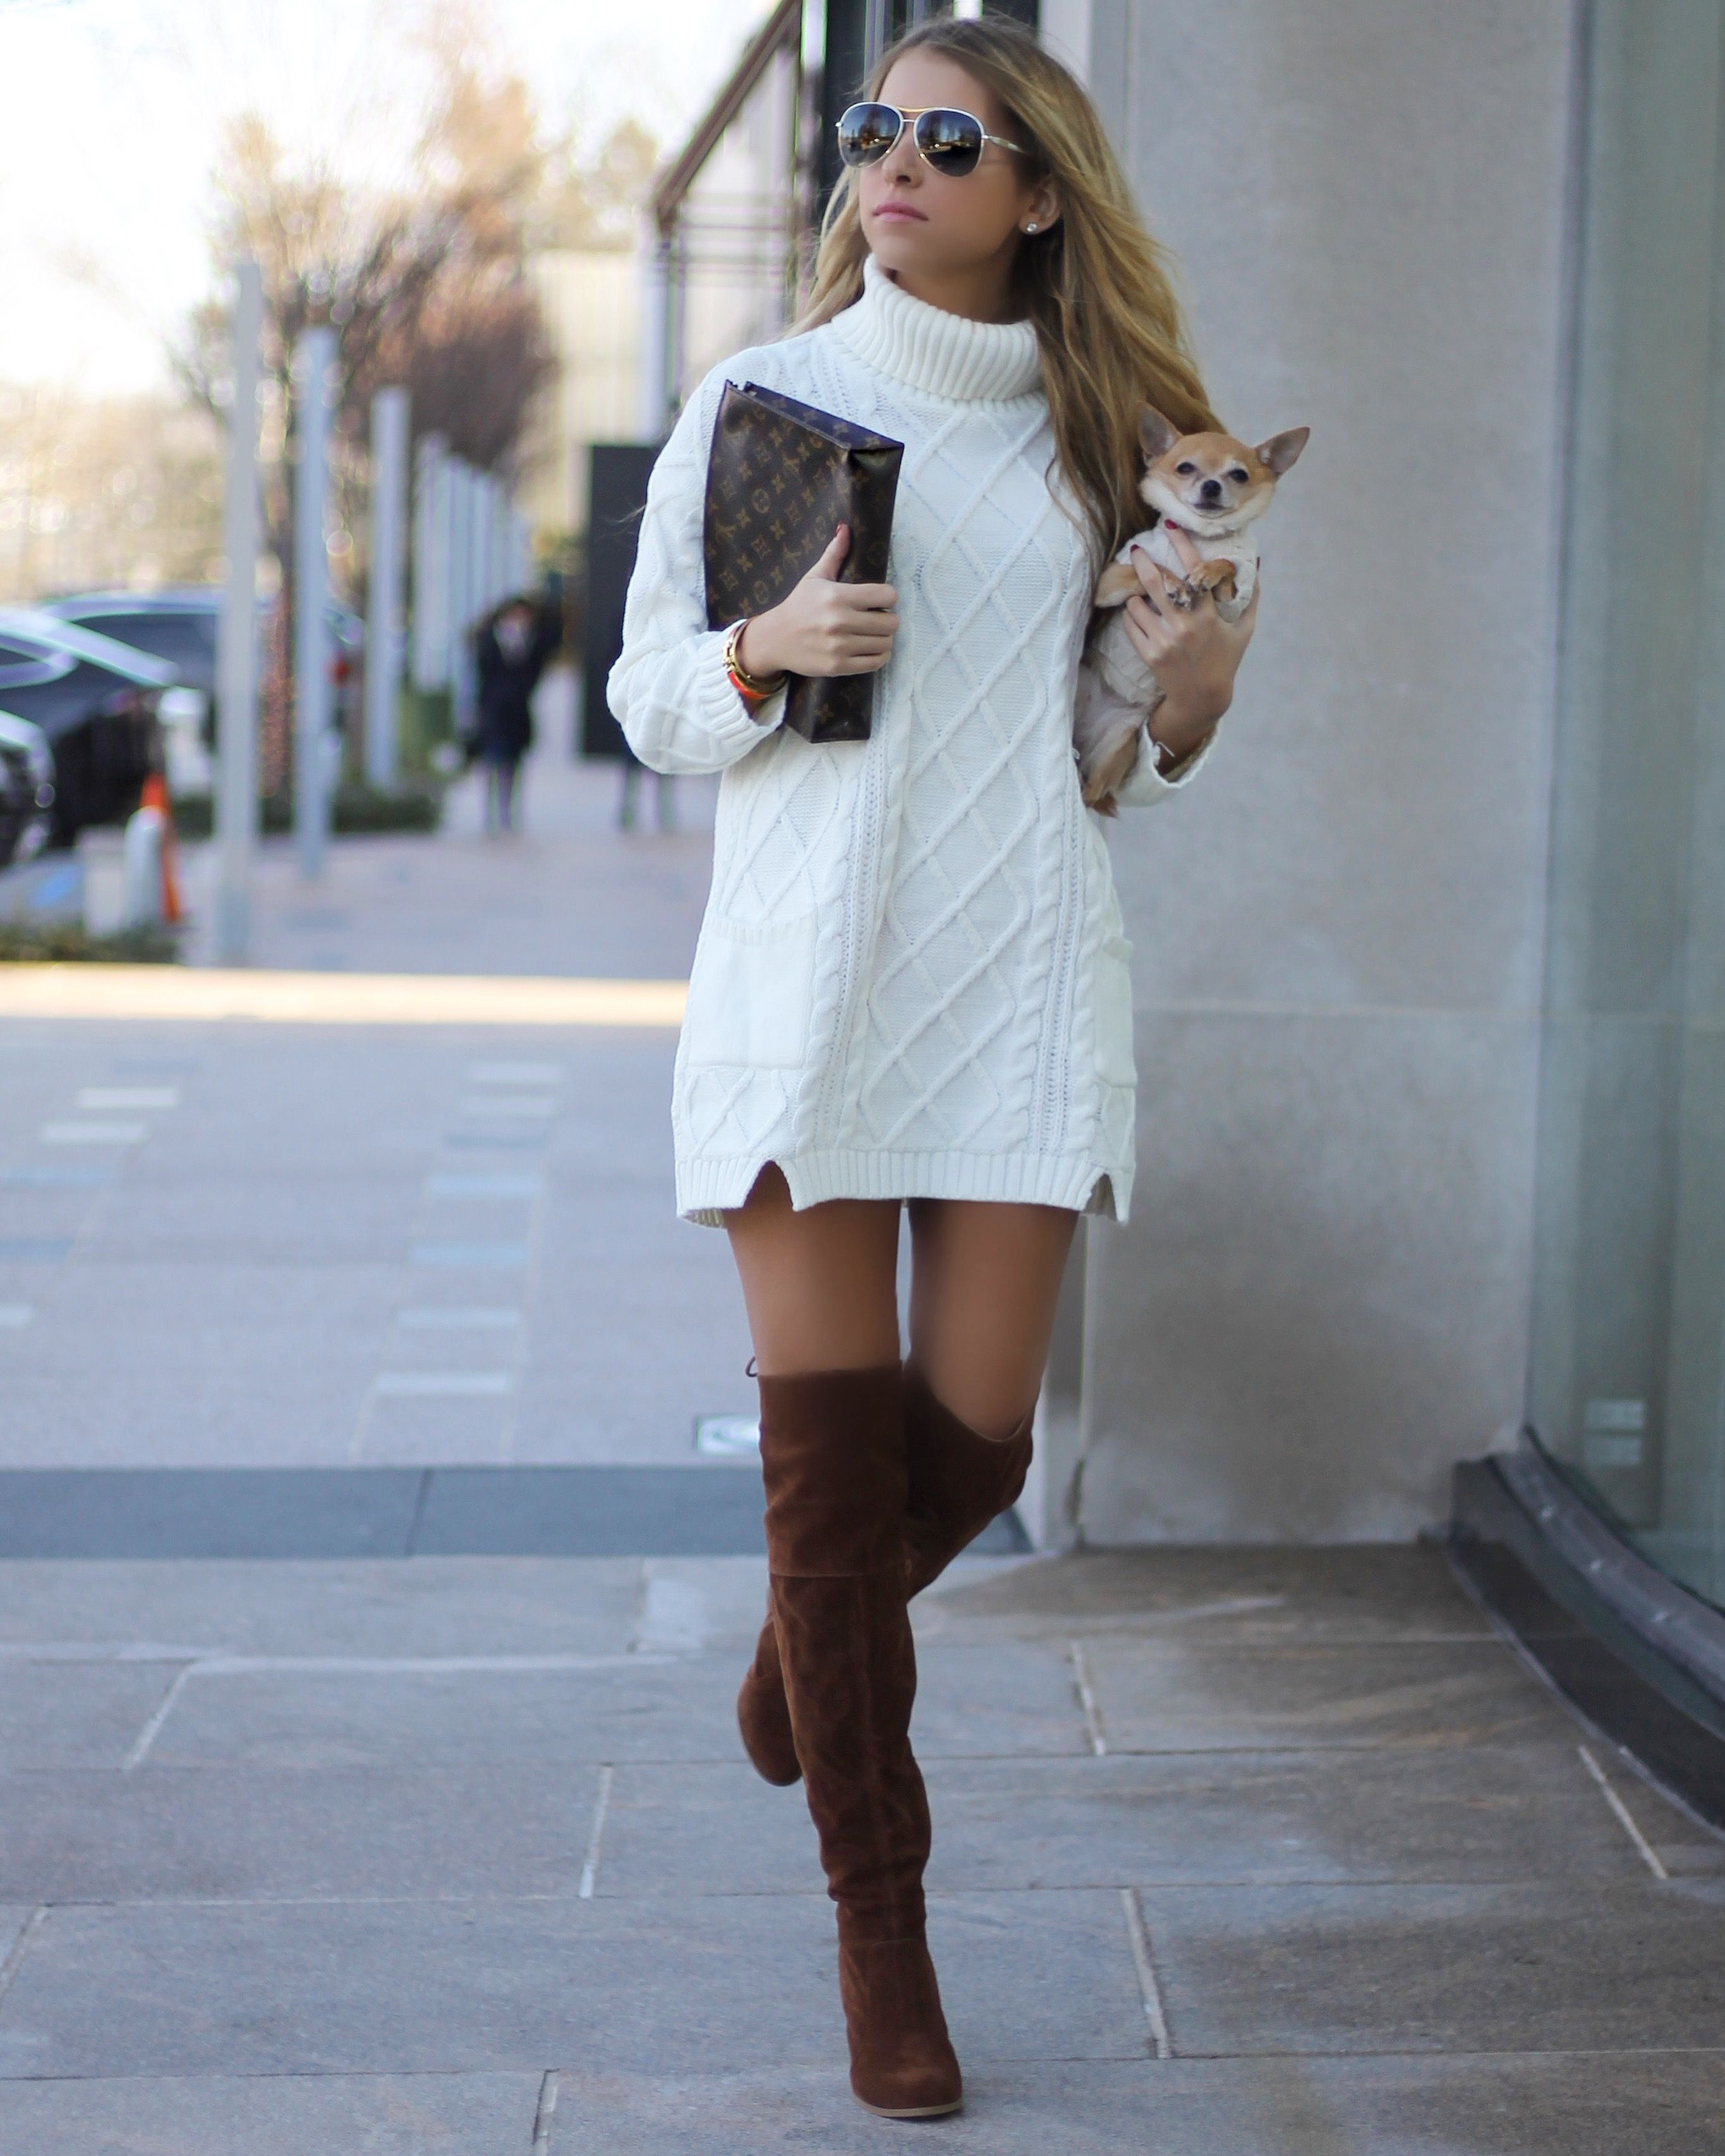 Sweater Dress Over The Knee Boots Fav Color Is Whitekm